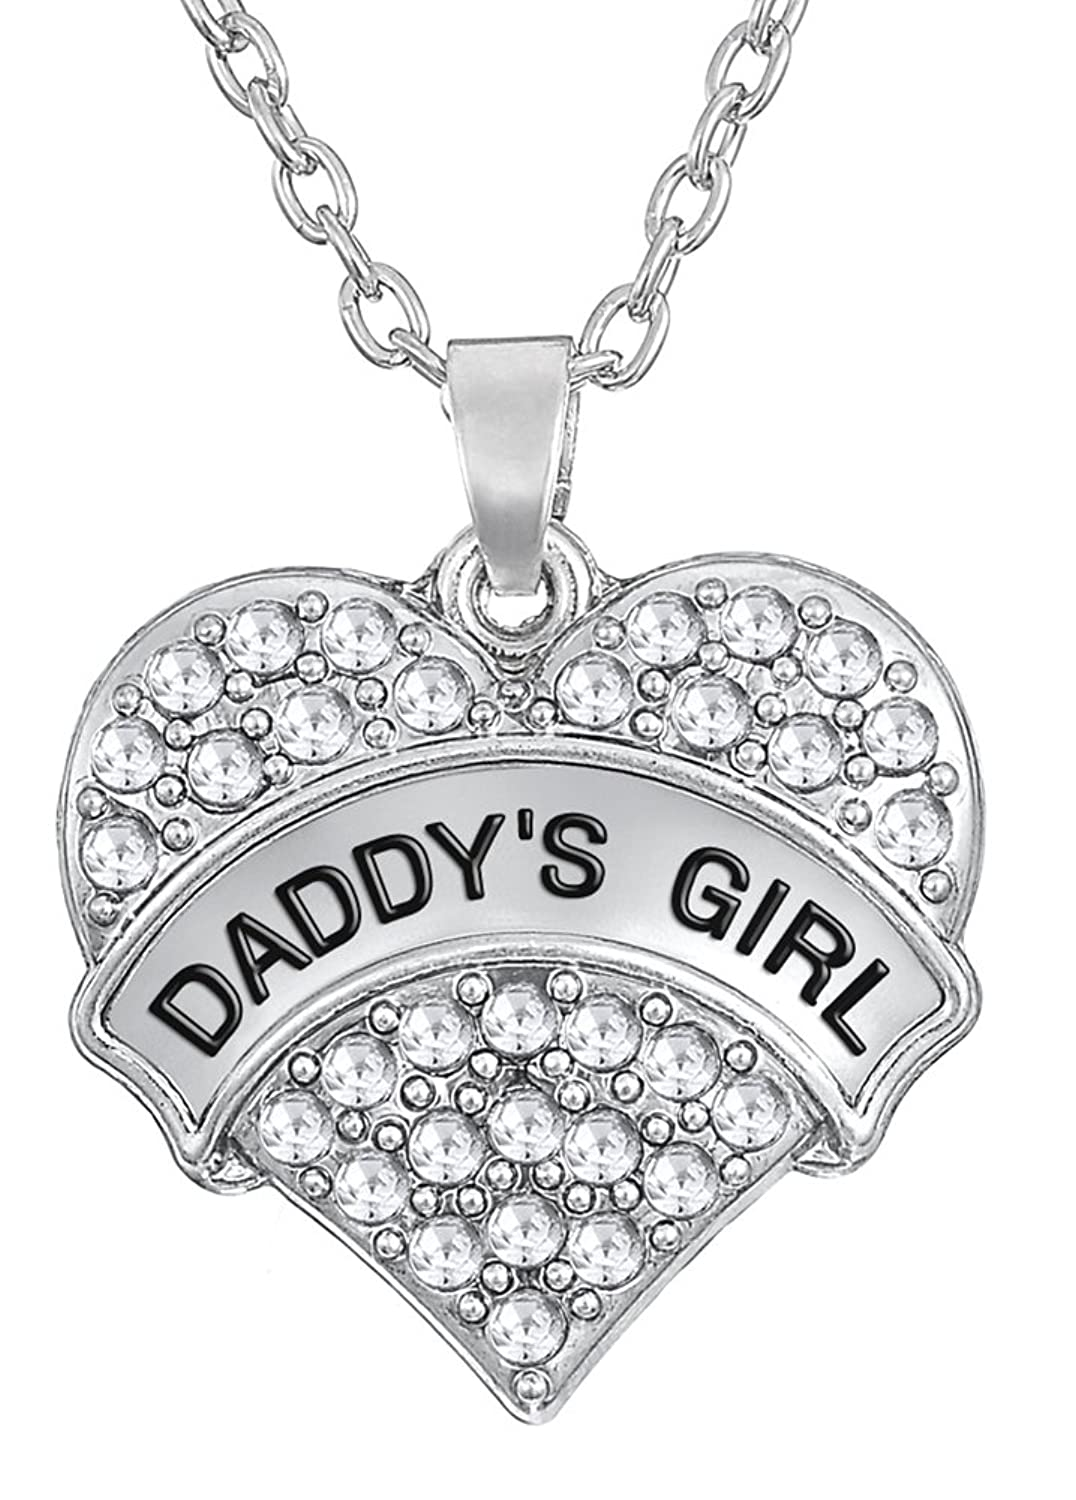 ''DADDY'S GIRL'' Heart Necklace for Daughters   Daughter Gift From Father   Gifts From Dad   Jewelry Gifts   Mother's Day Gifts